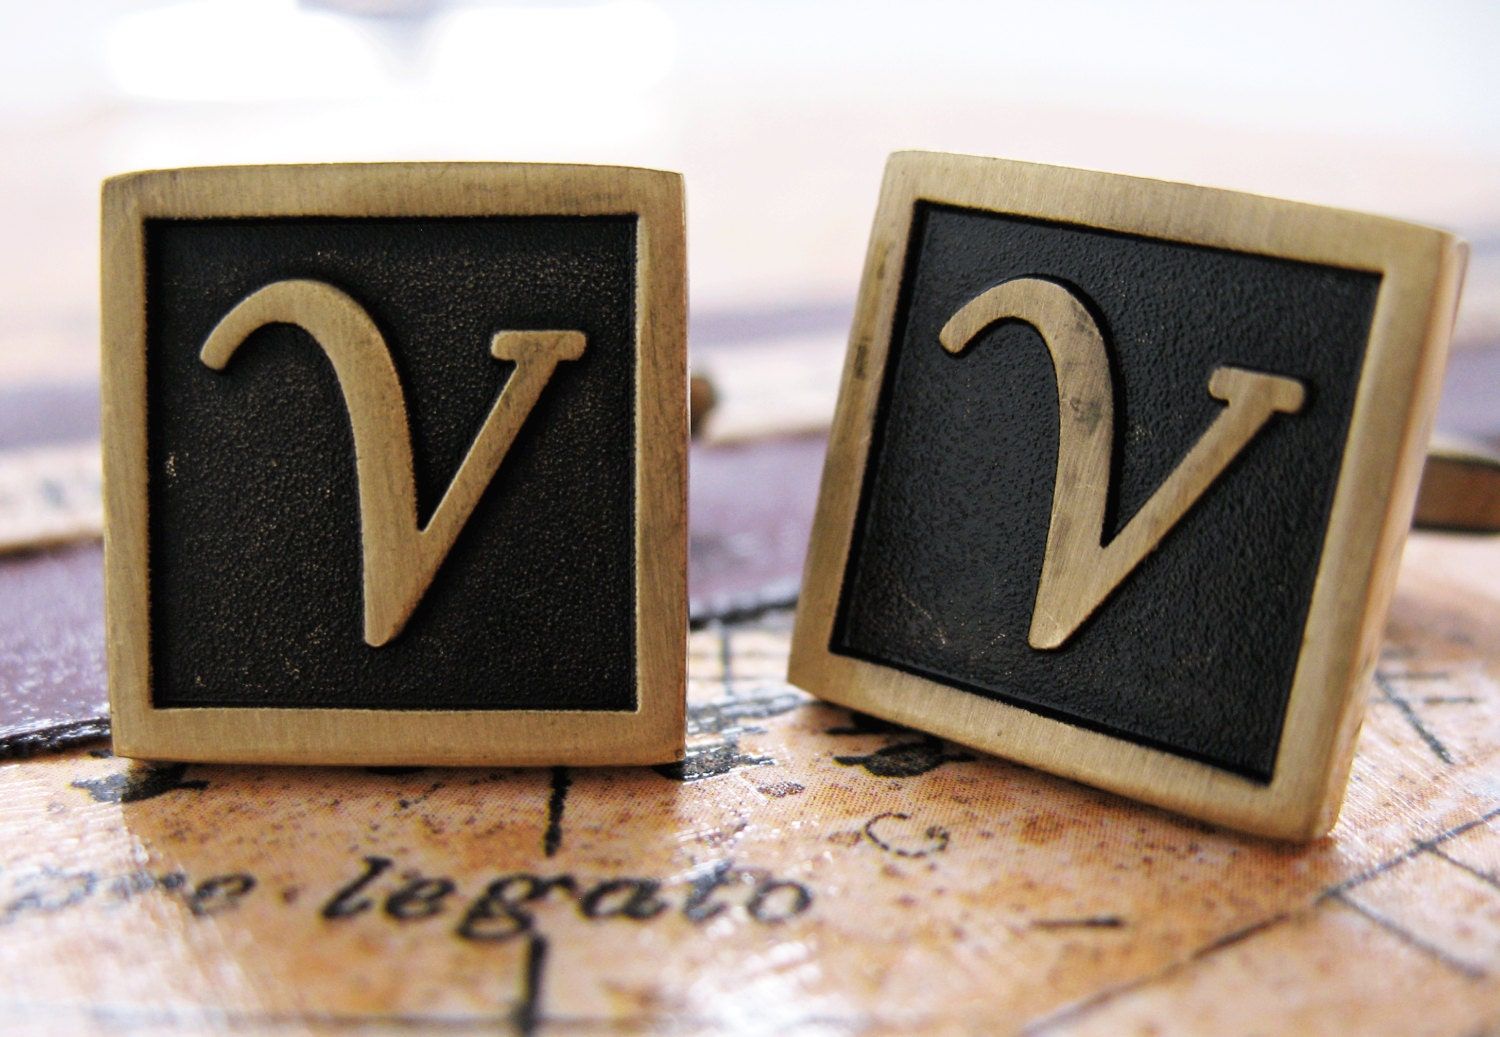 v initial cufflinks antique brass square 3 d letter vintage english lettering cuff links groom